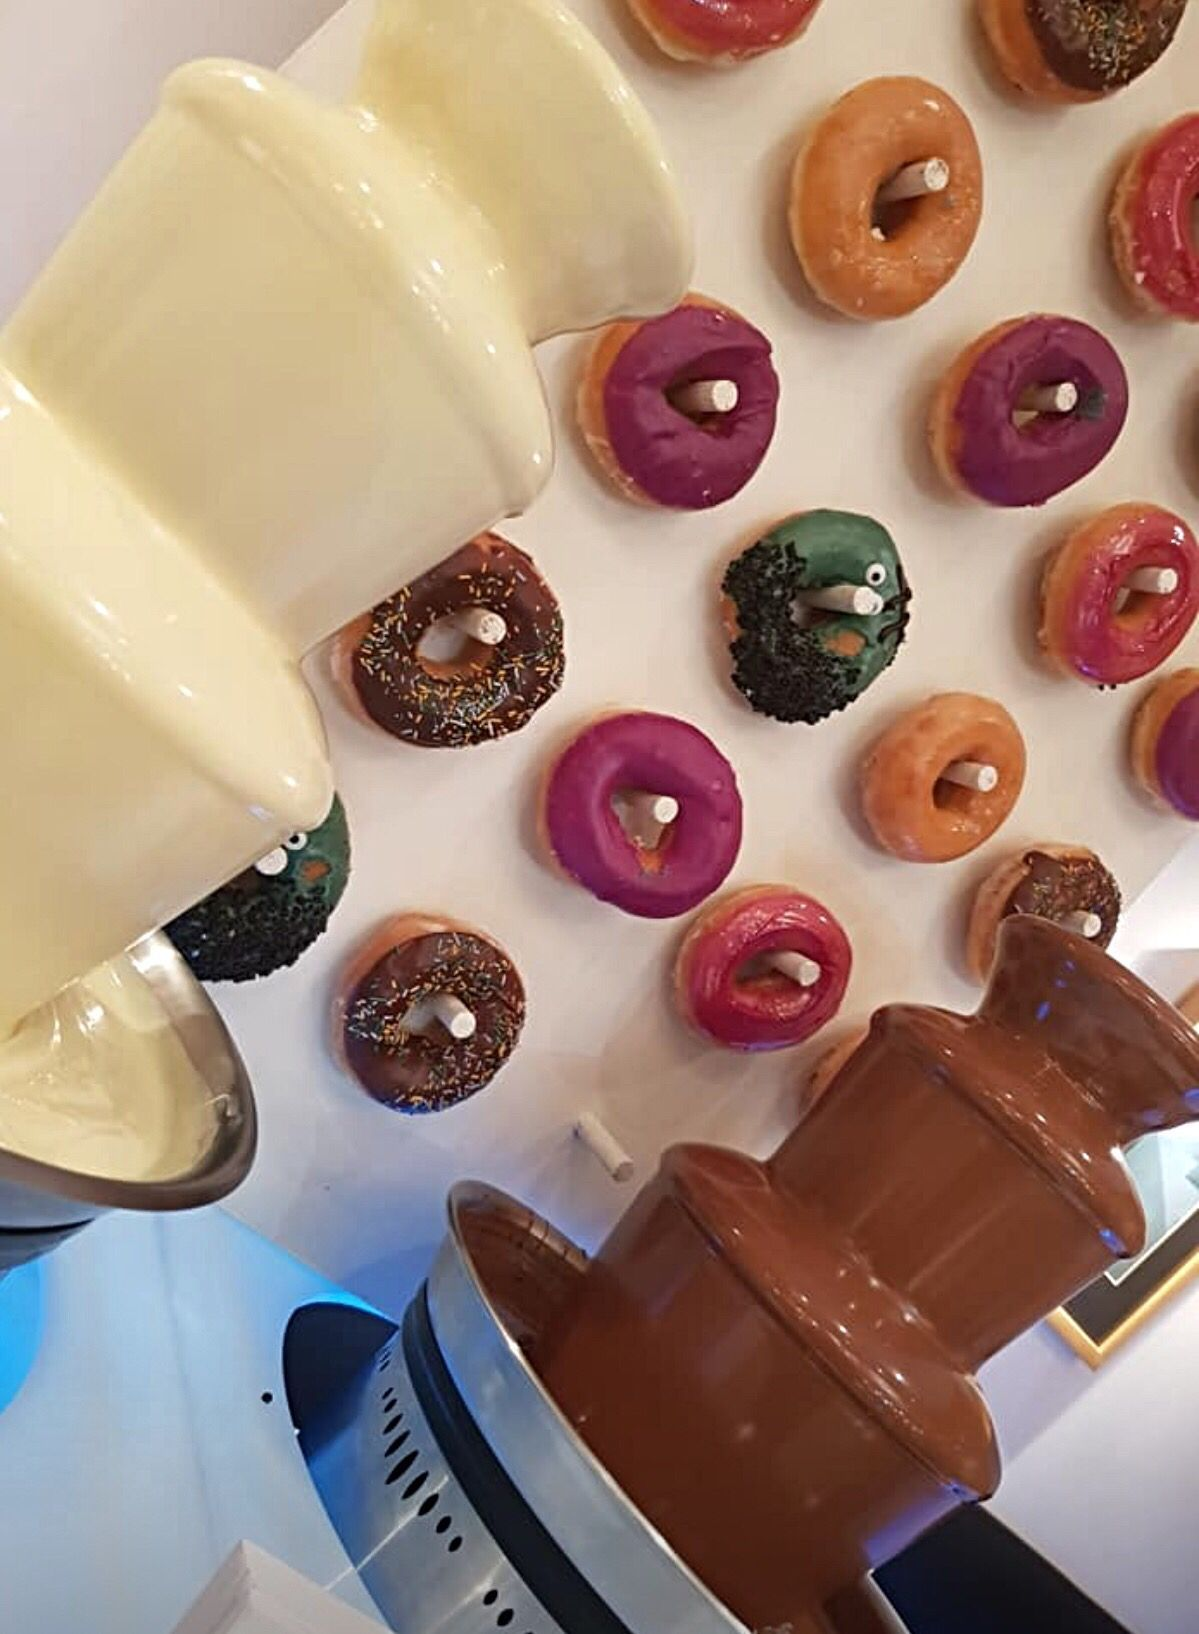 Donut wall hire  #chocolatefountainfoods Donut wall and chocolate fountain hire #chocolatefountainfoods